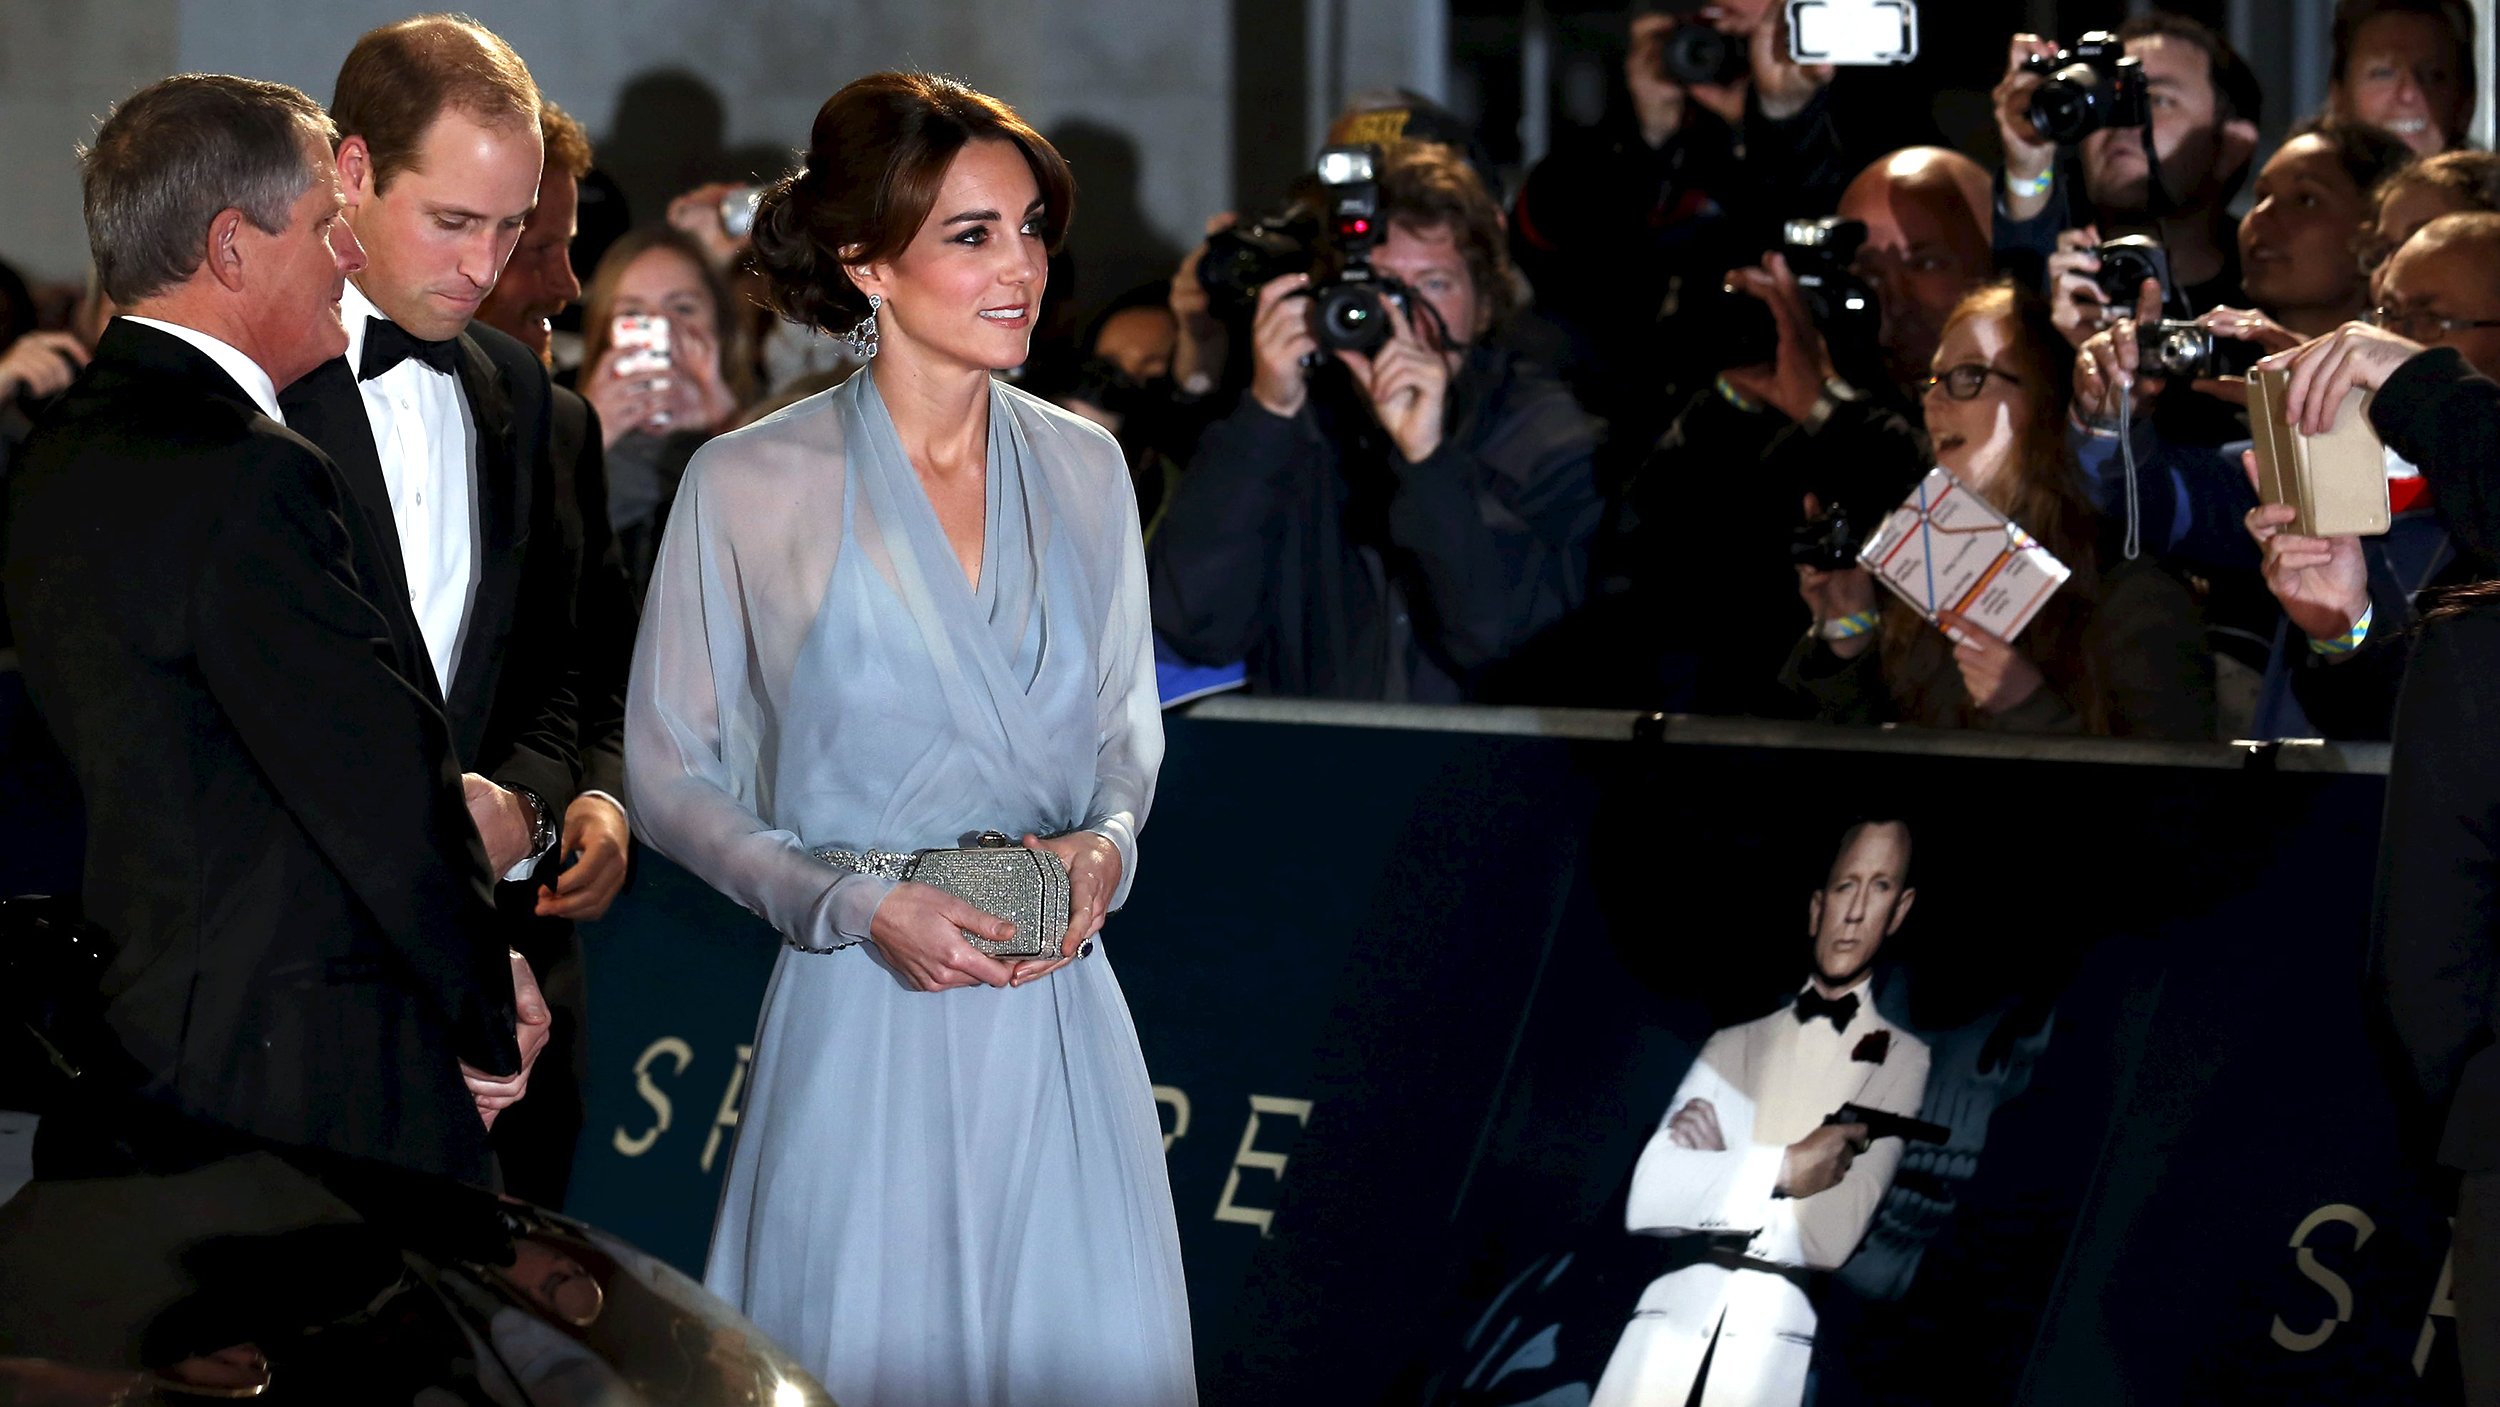 royals-duchess-kate-spectre-james-bond-today-tease-151026_0ae482abec02e899c9054923f95afc40.jpg